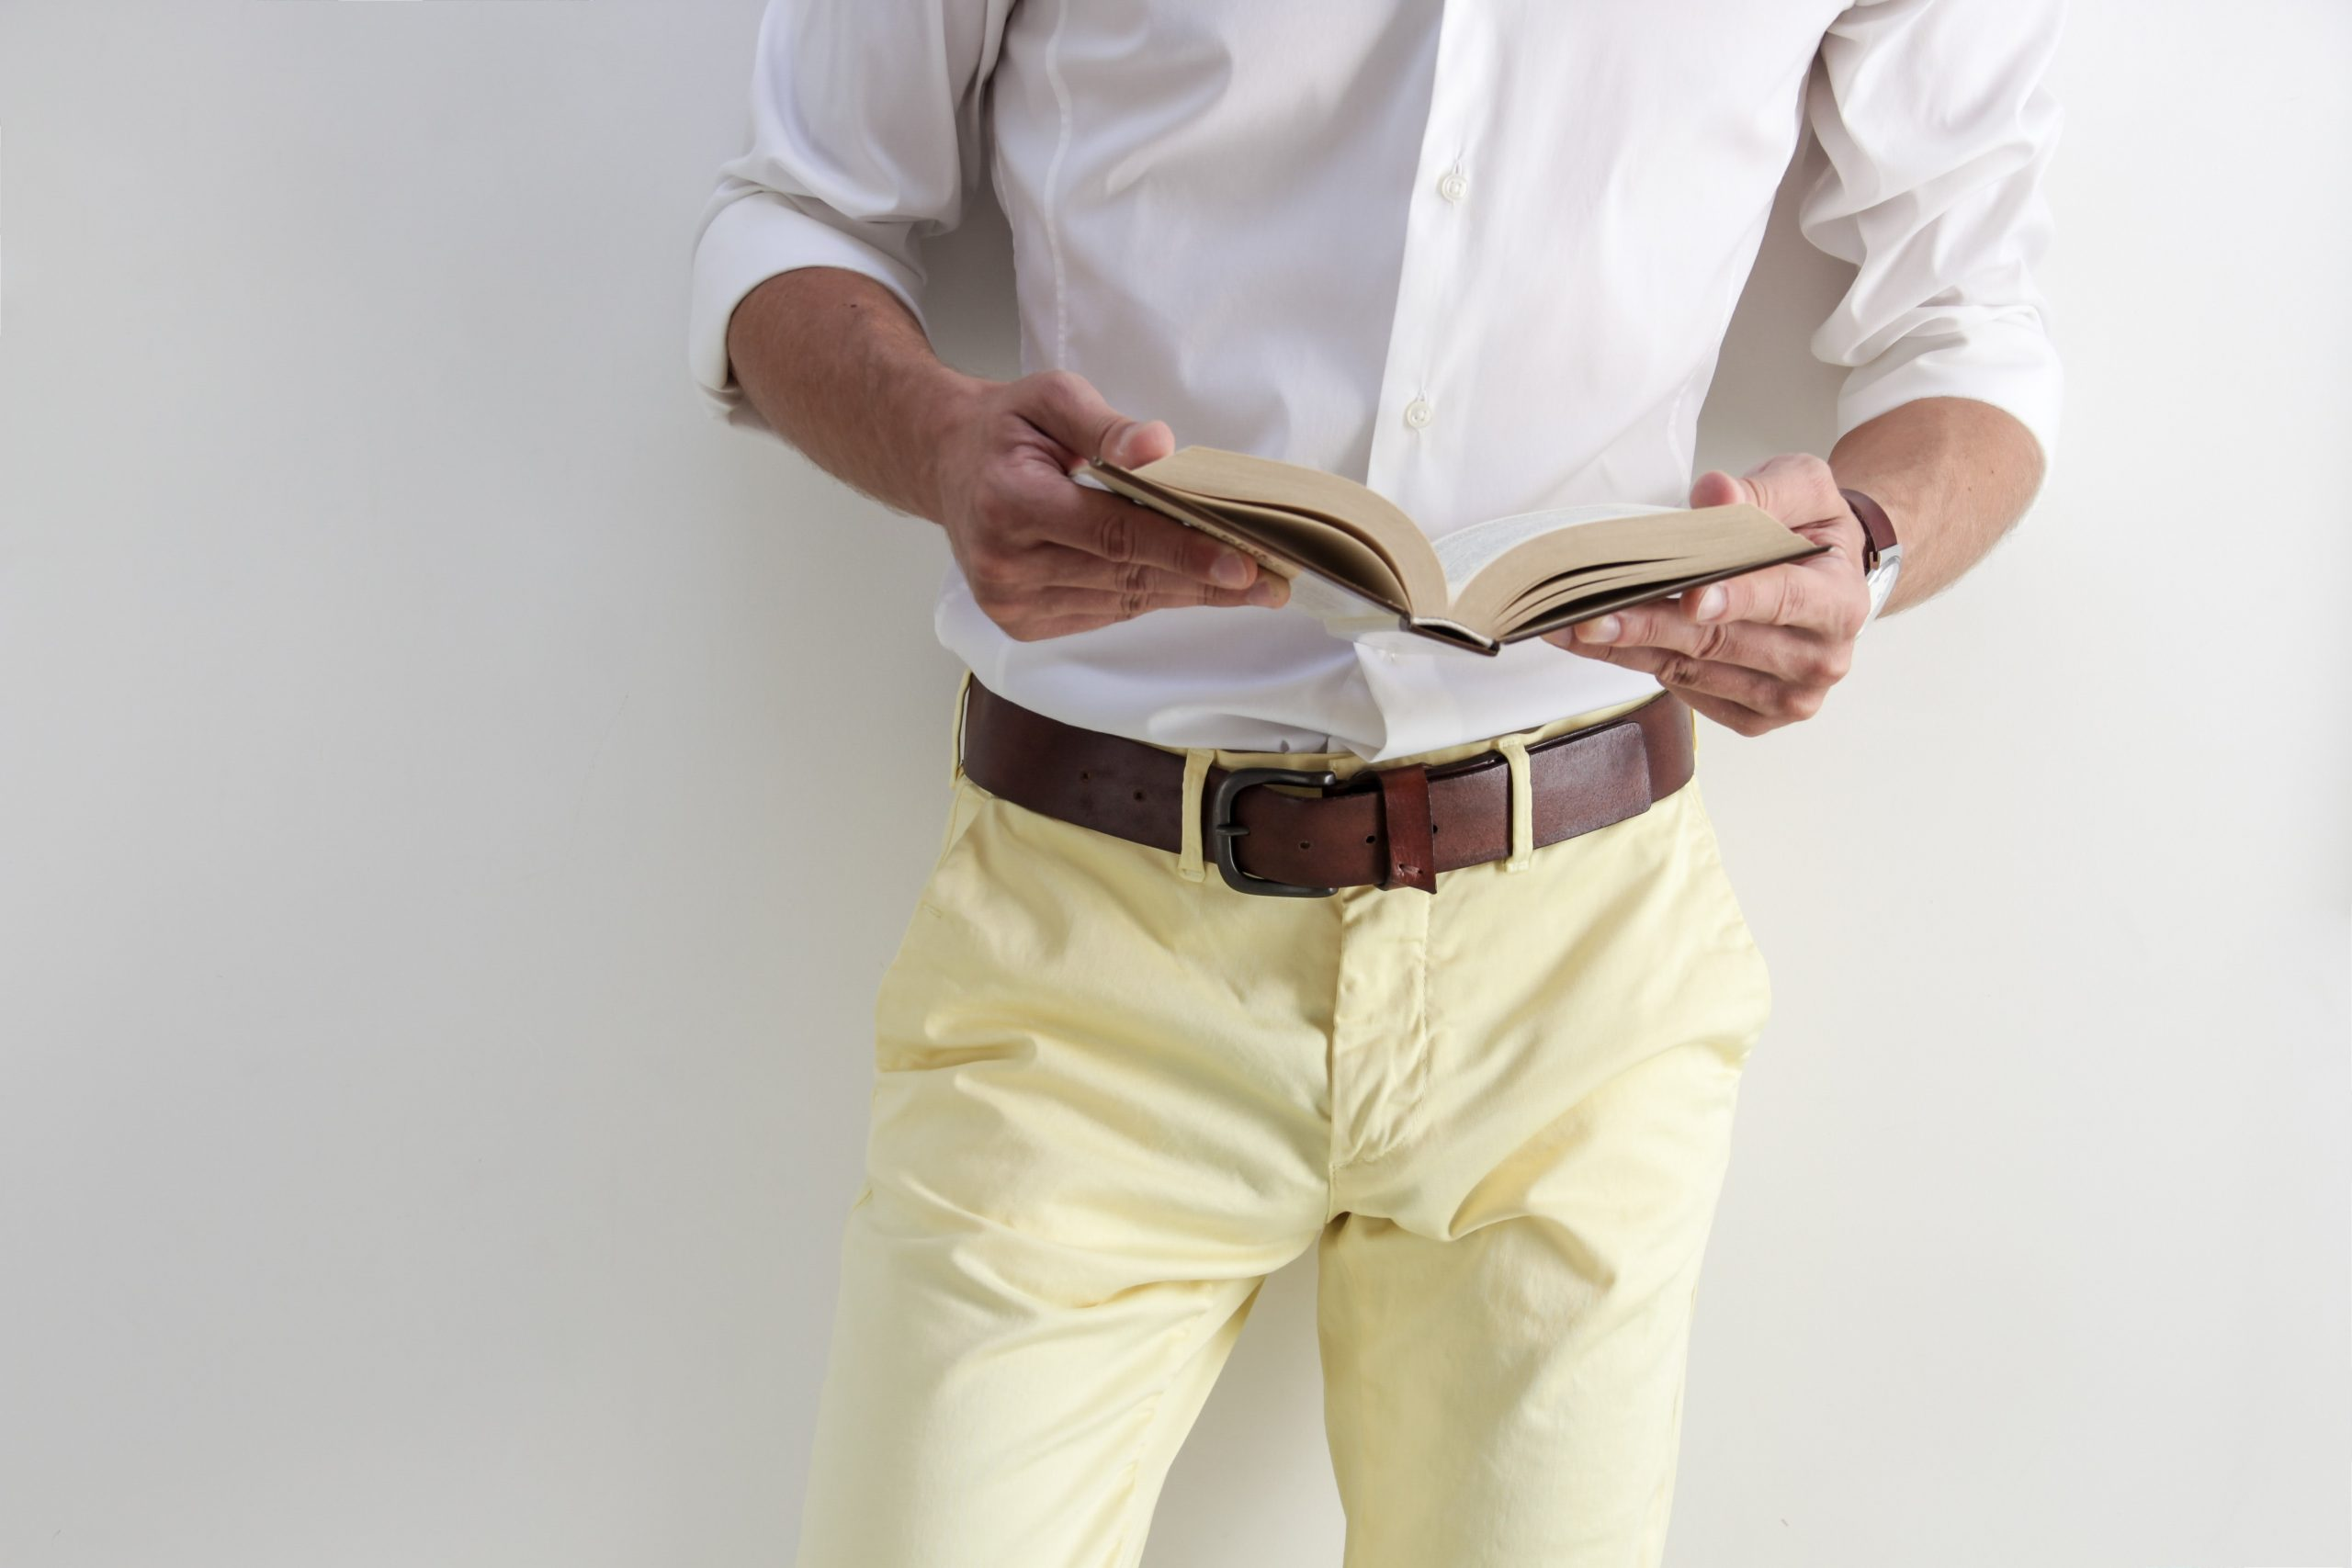 torso shot of a man wearing a white dress shirt and light yellow pants, business casual attire